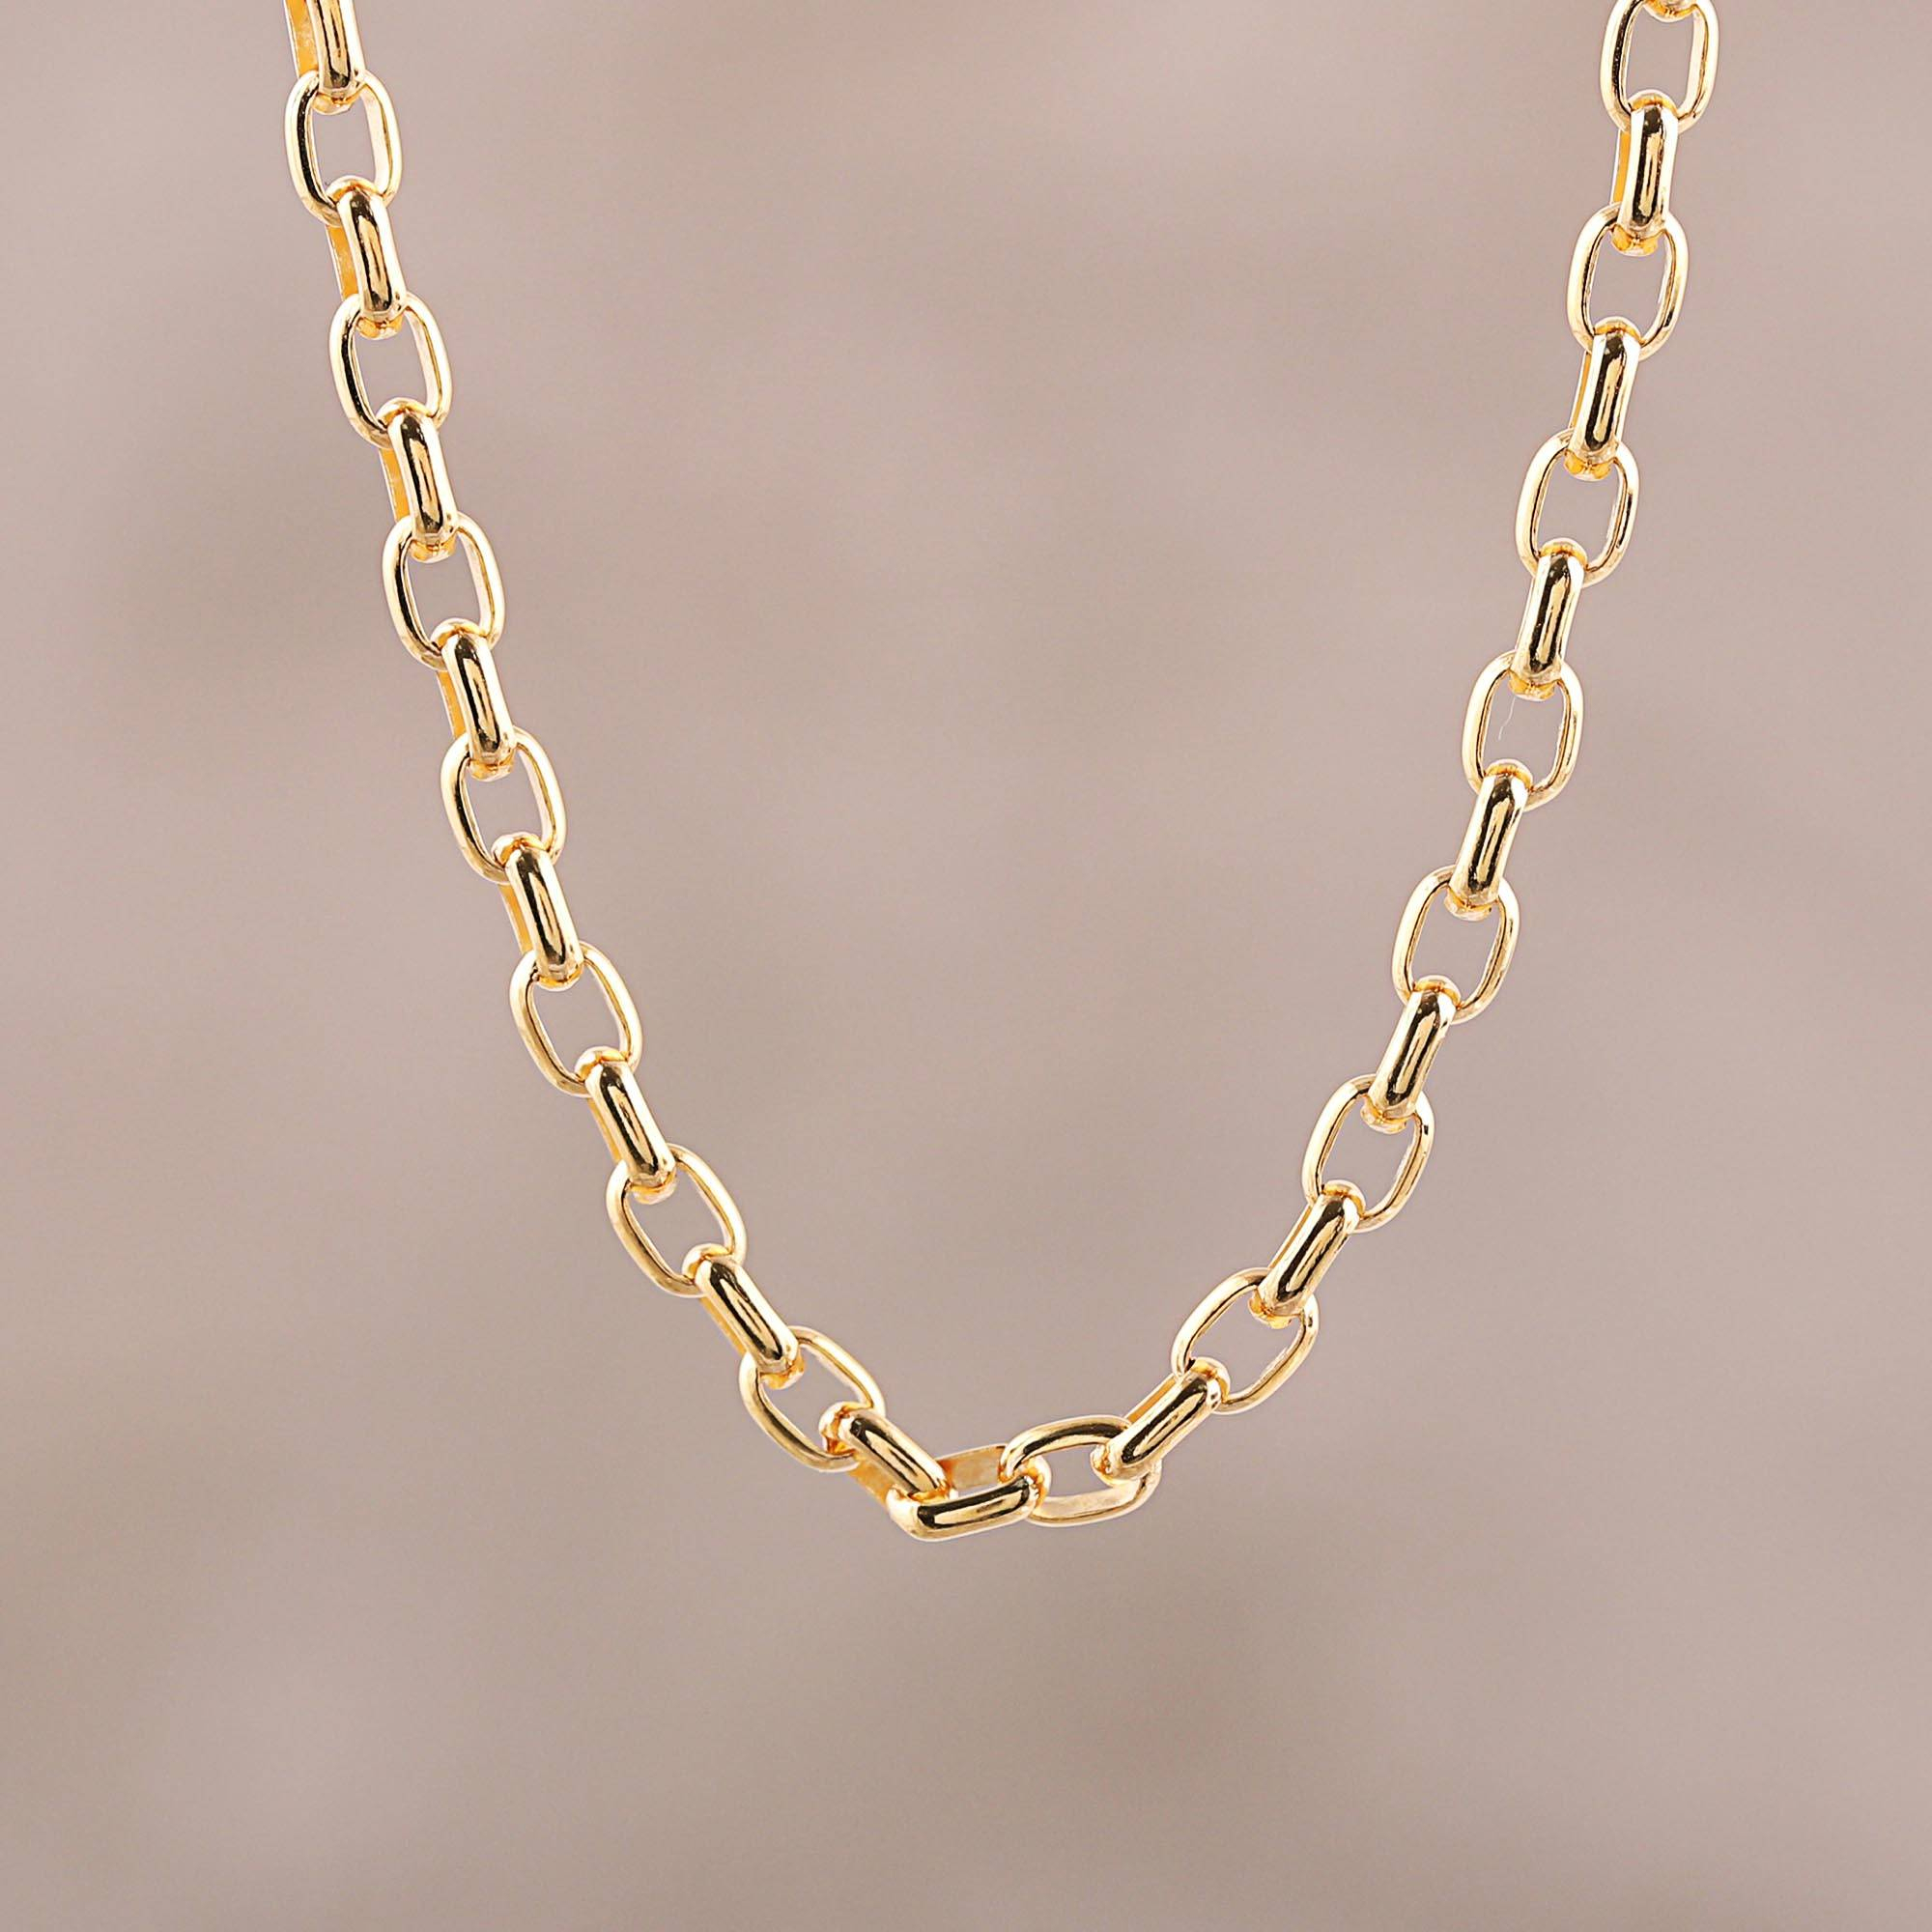 22K Gold Plated Sterling Silver Chain Necklace From India, 'classic Gold' In 2020 Classic Cable Chain Necklaces (Gallery 8 of 25)